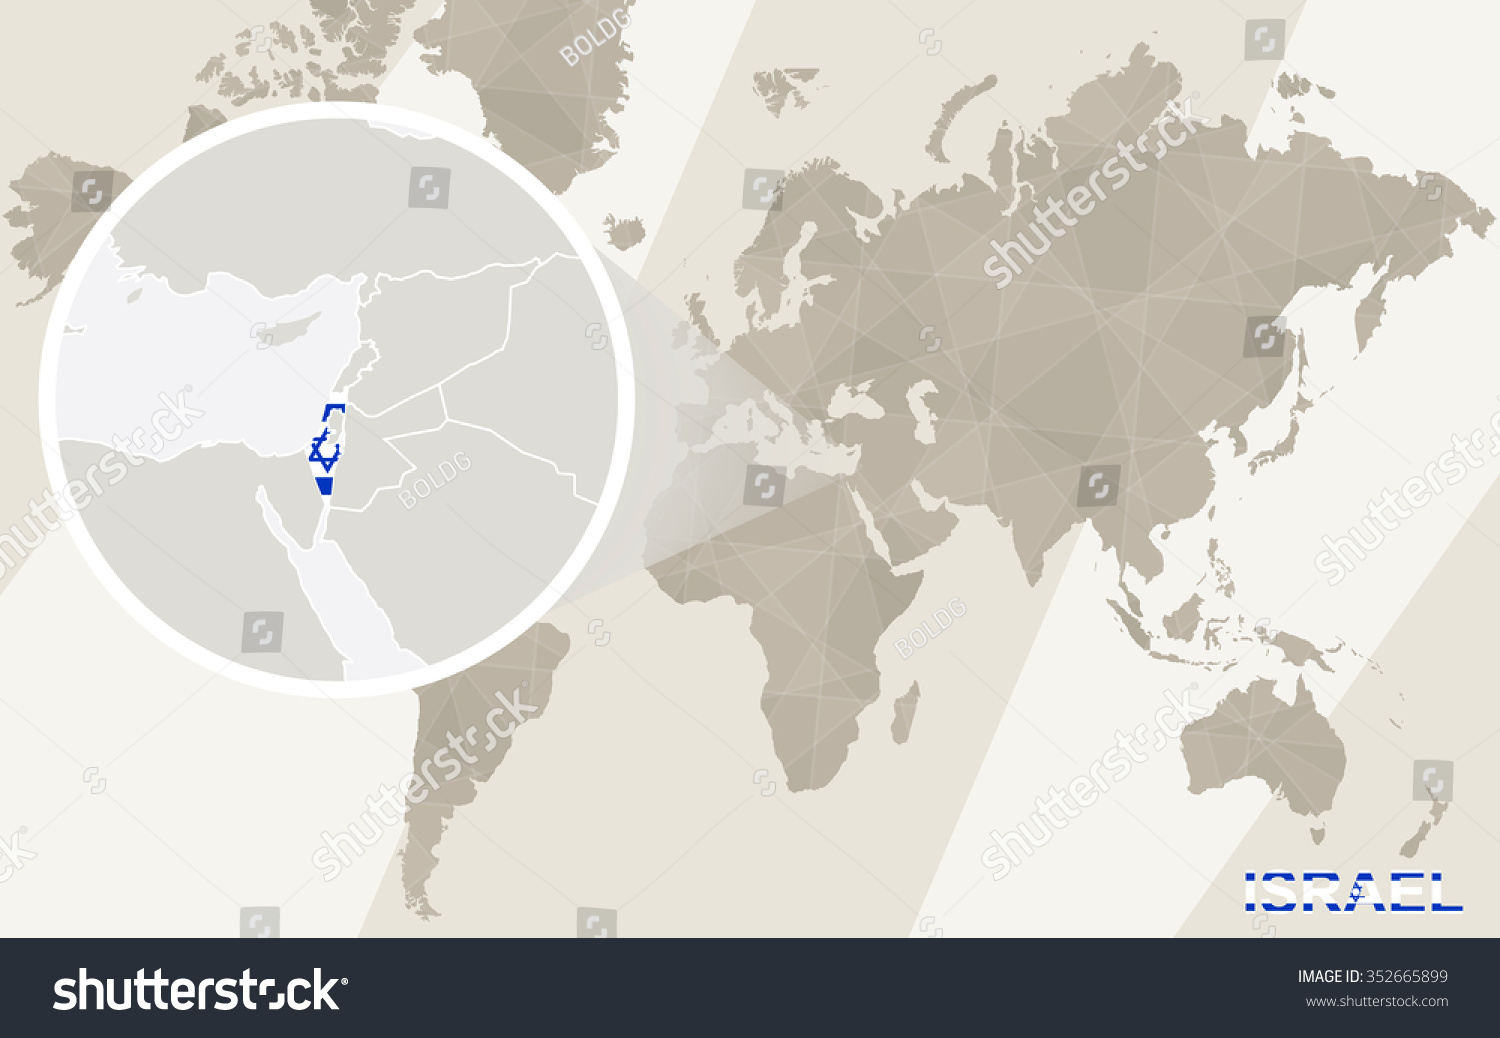 Zoom On Israel Map Flag World Stock Illustration - Royalty Free ...